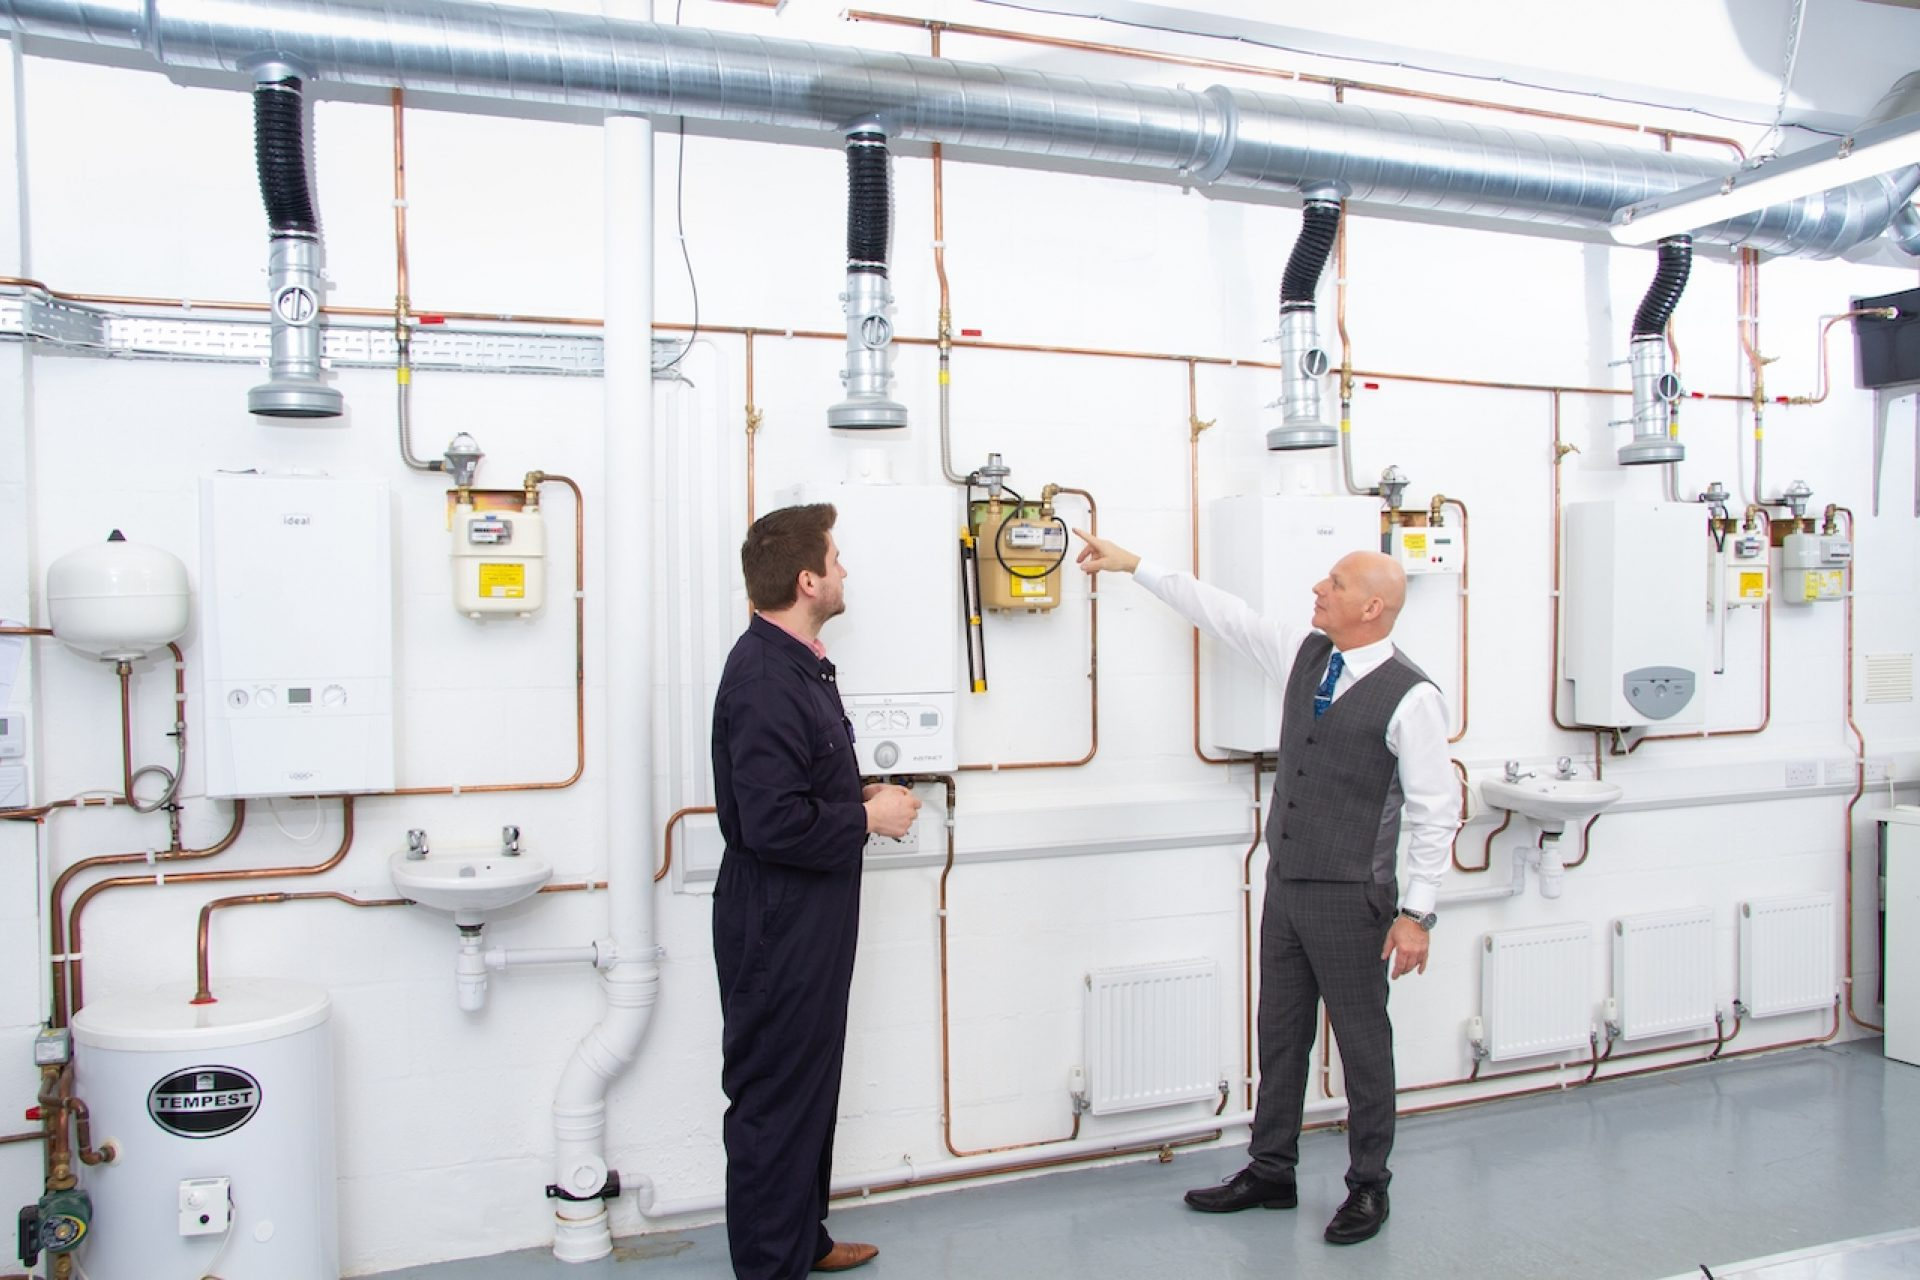 We are one of only a few training organisations in the UK who offer the Level 3 Gas Diploma for new entrants to the gas industry.